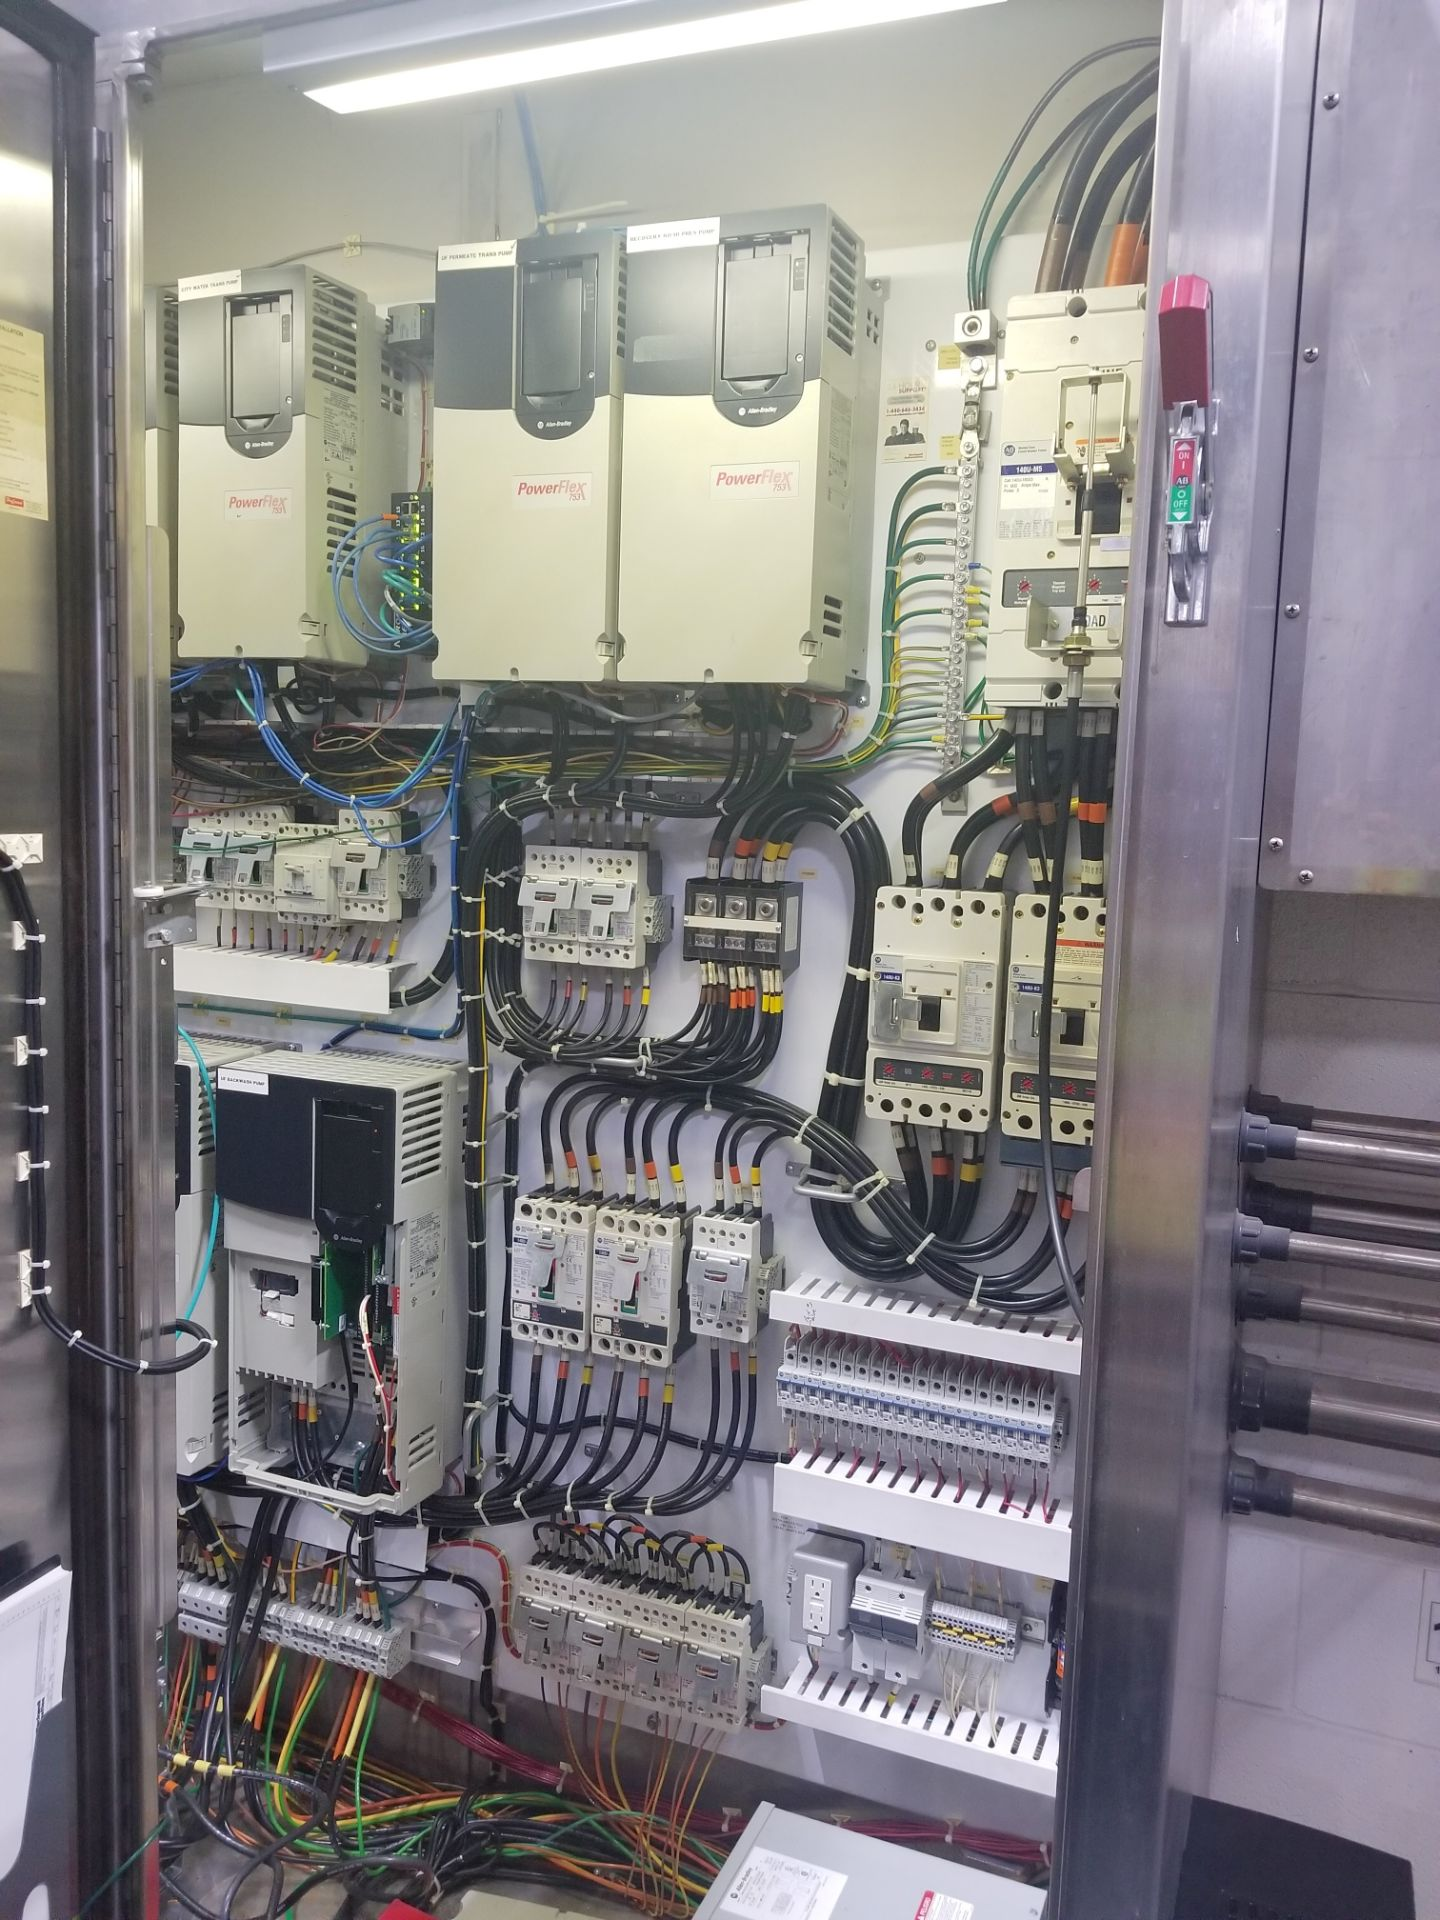 Rockwell Automation VFD Control Panel - Image 3 of 11